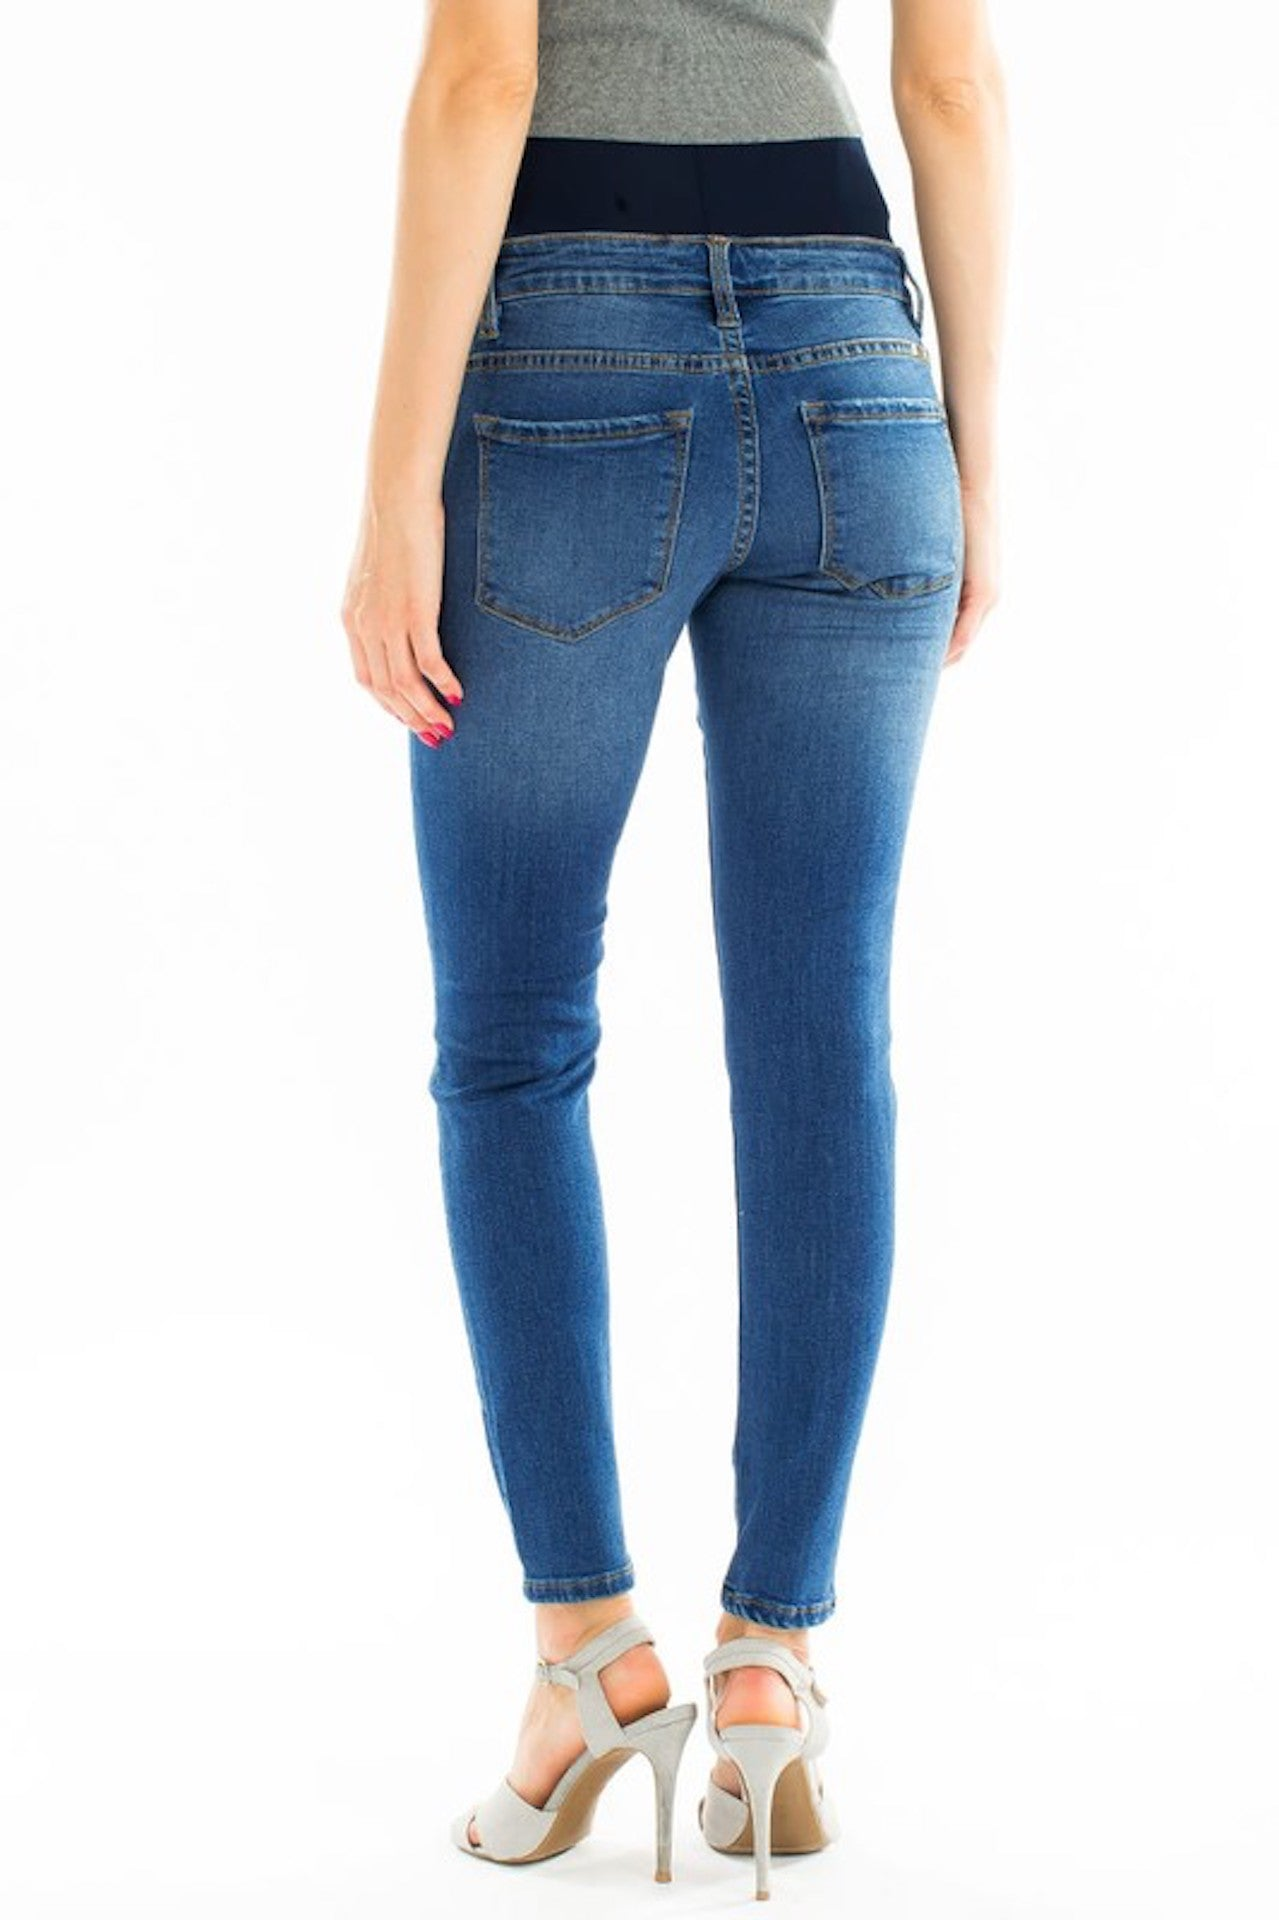 7029dea54eb74 ... Load image into Gallery viewer, KanCan Maternity Jeans Collection:  Summer 2019 Color: Light ...